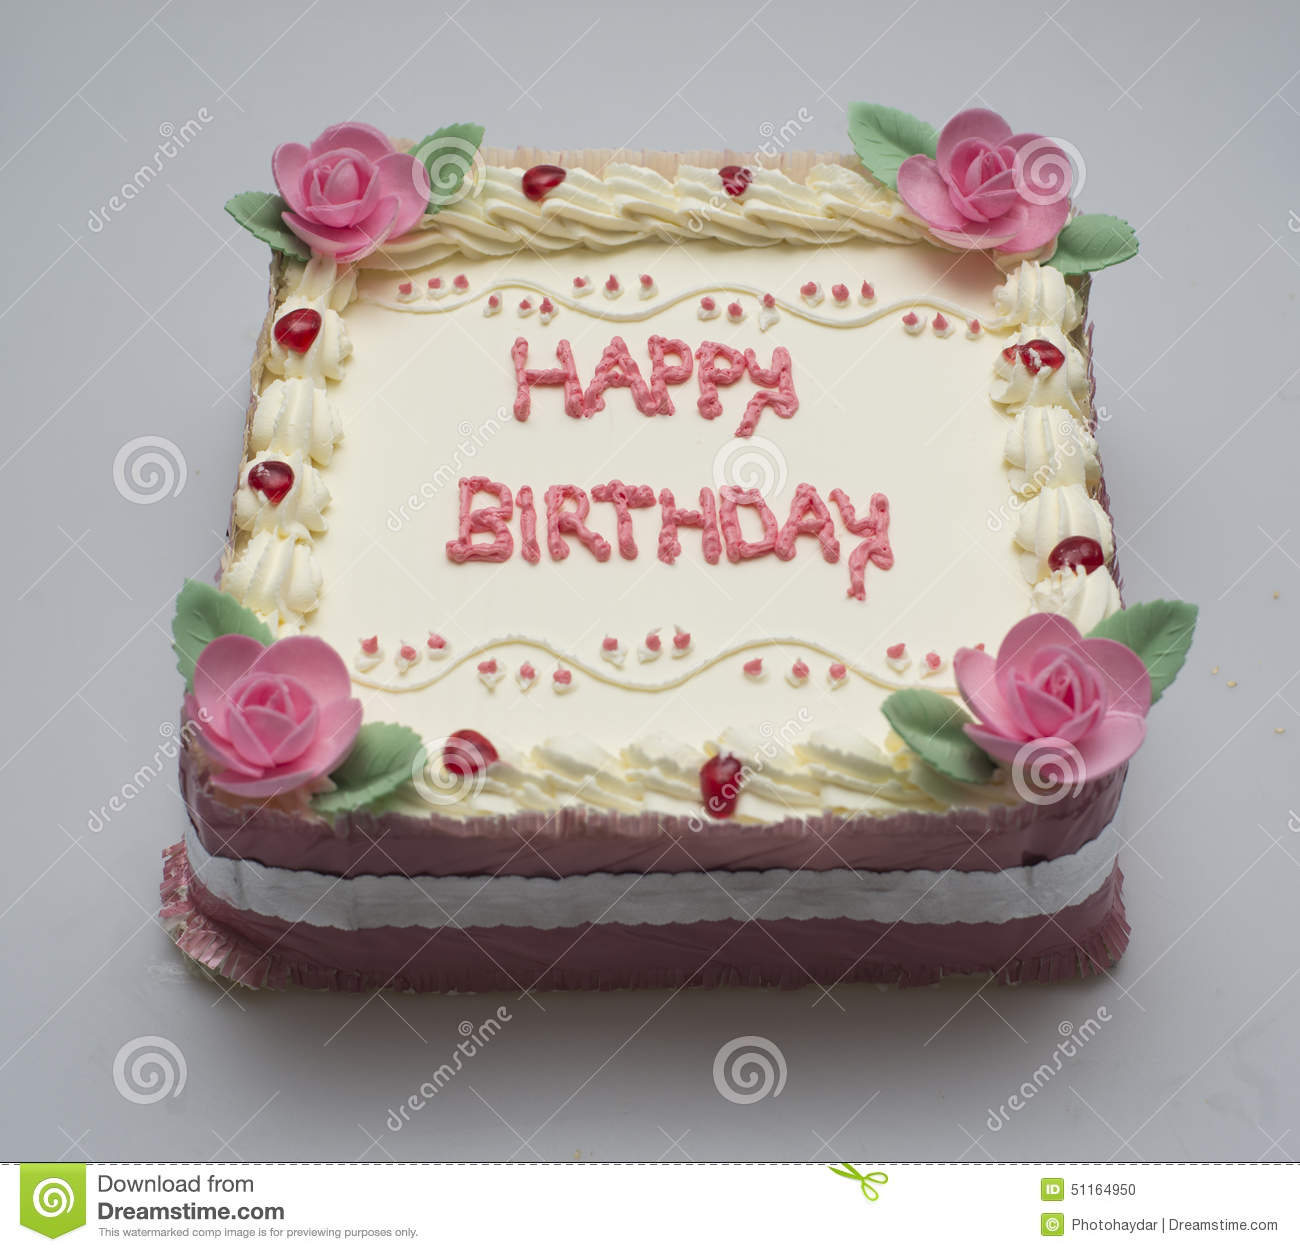 Square Birthday Cake For Girl Stock Photo Image Of Frosting Event